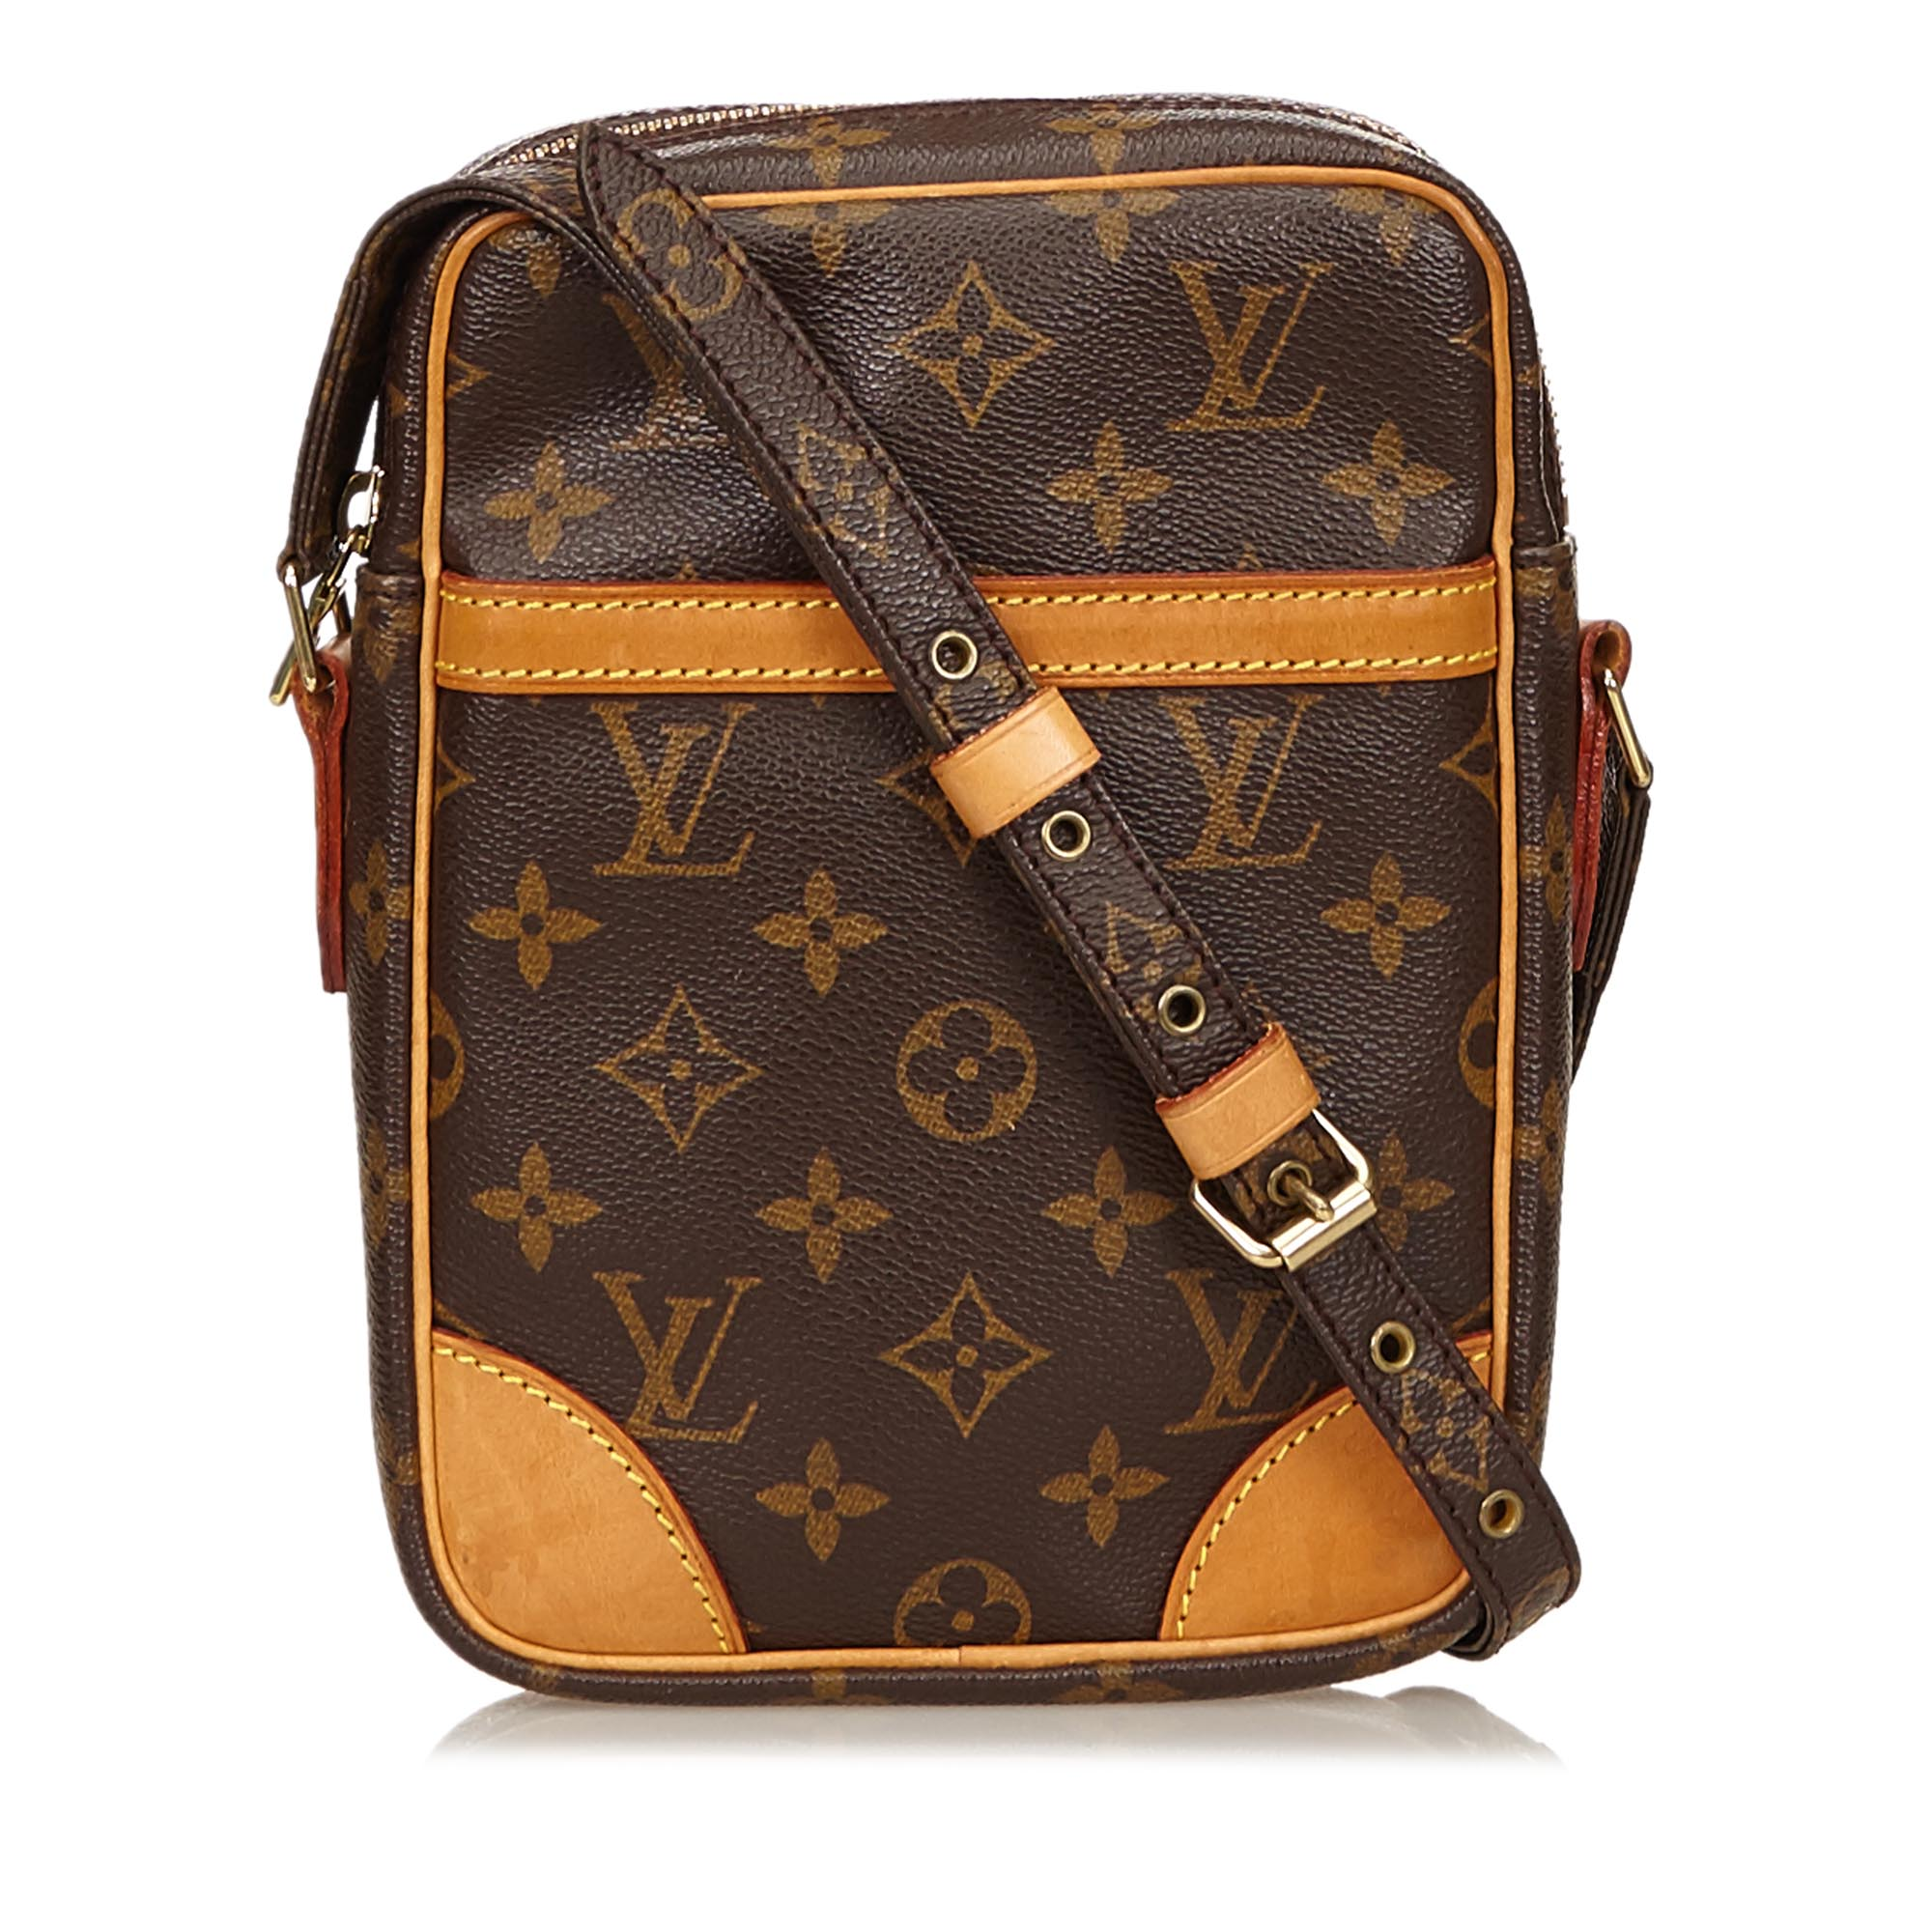 Louis Vuitton Monogram Canvas Danube Shoulder Bag